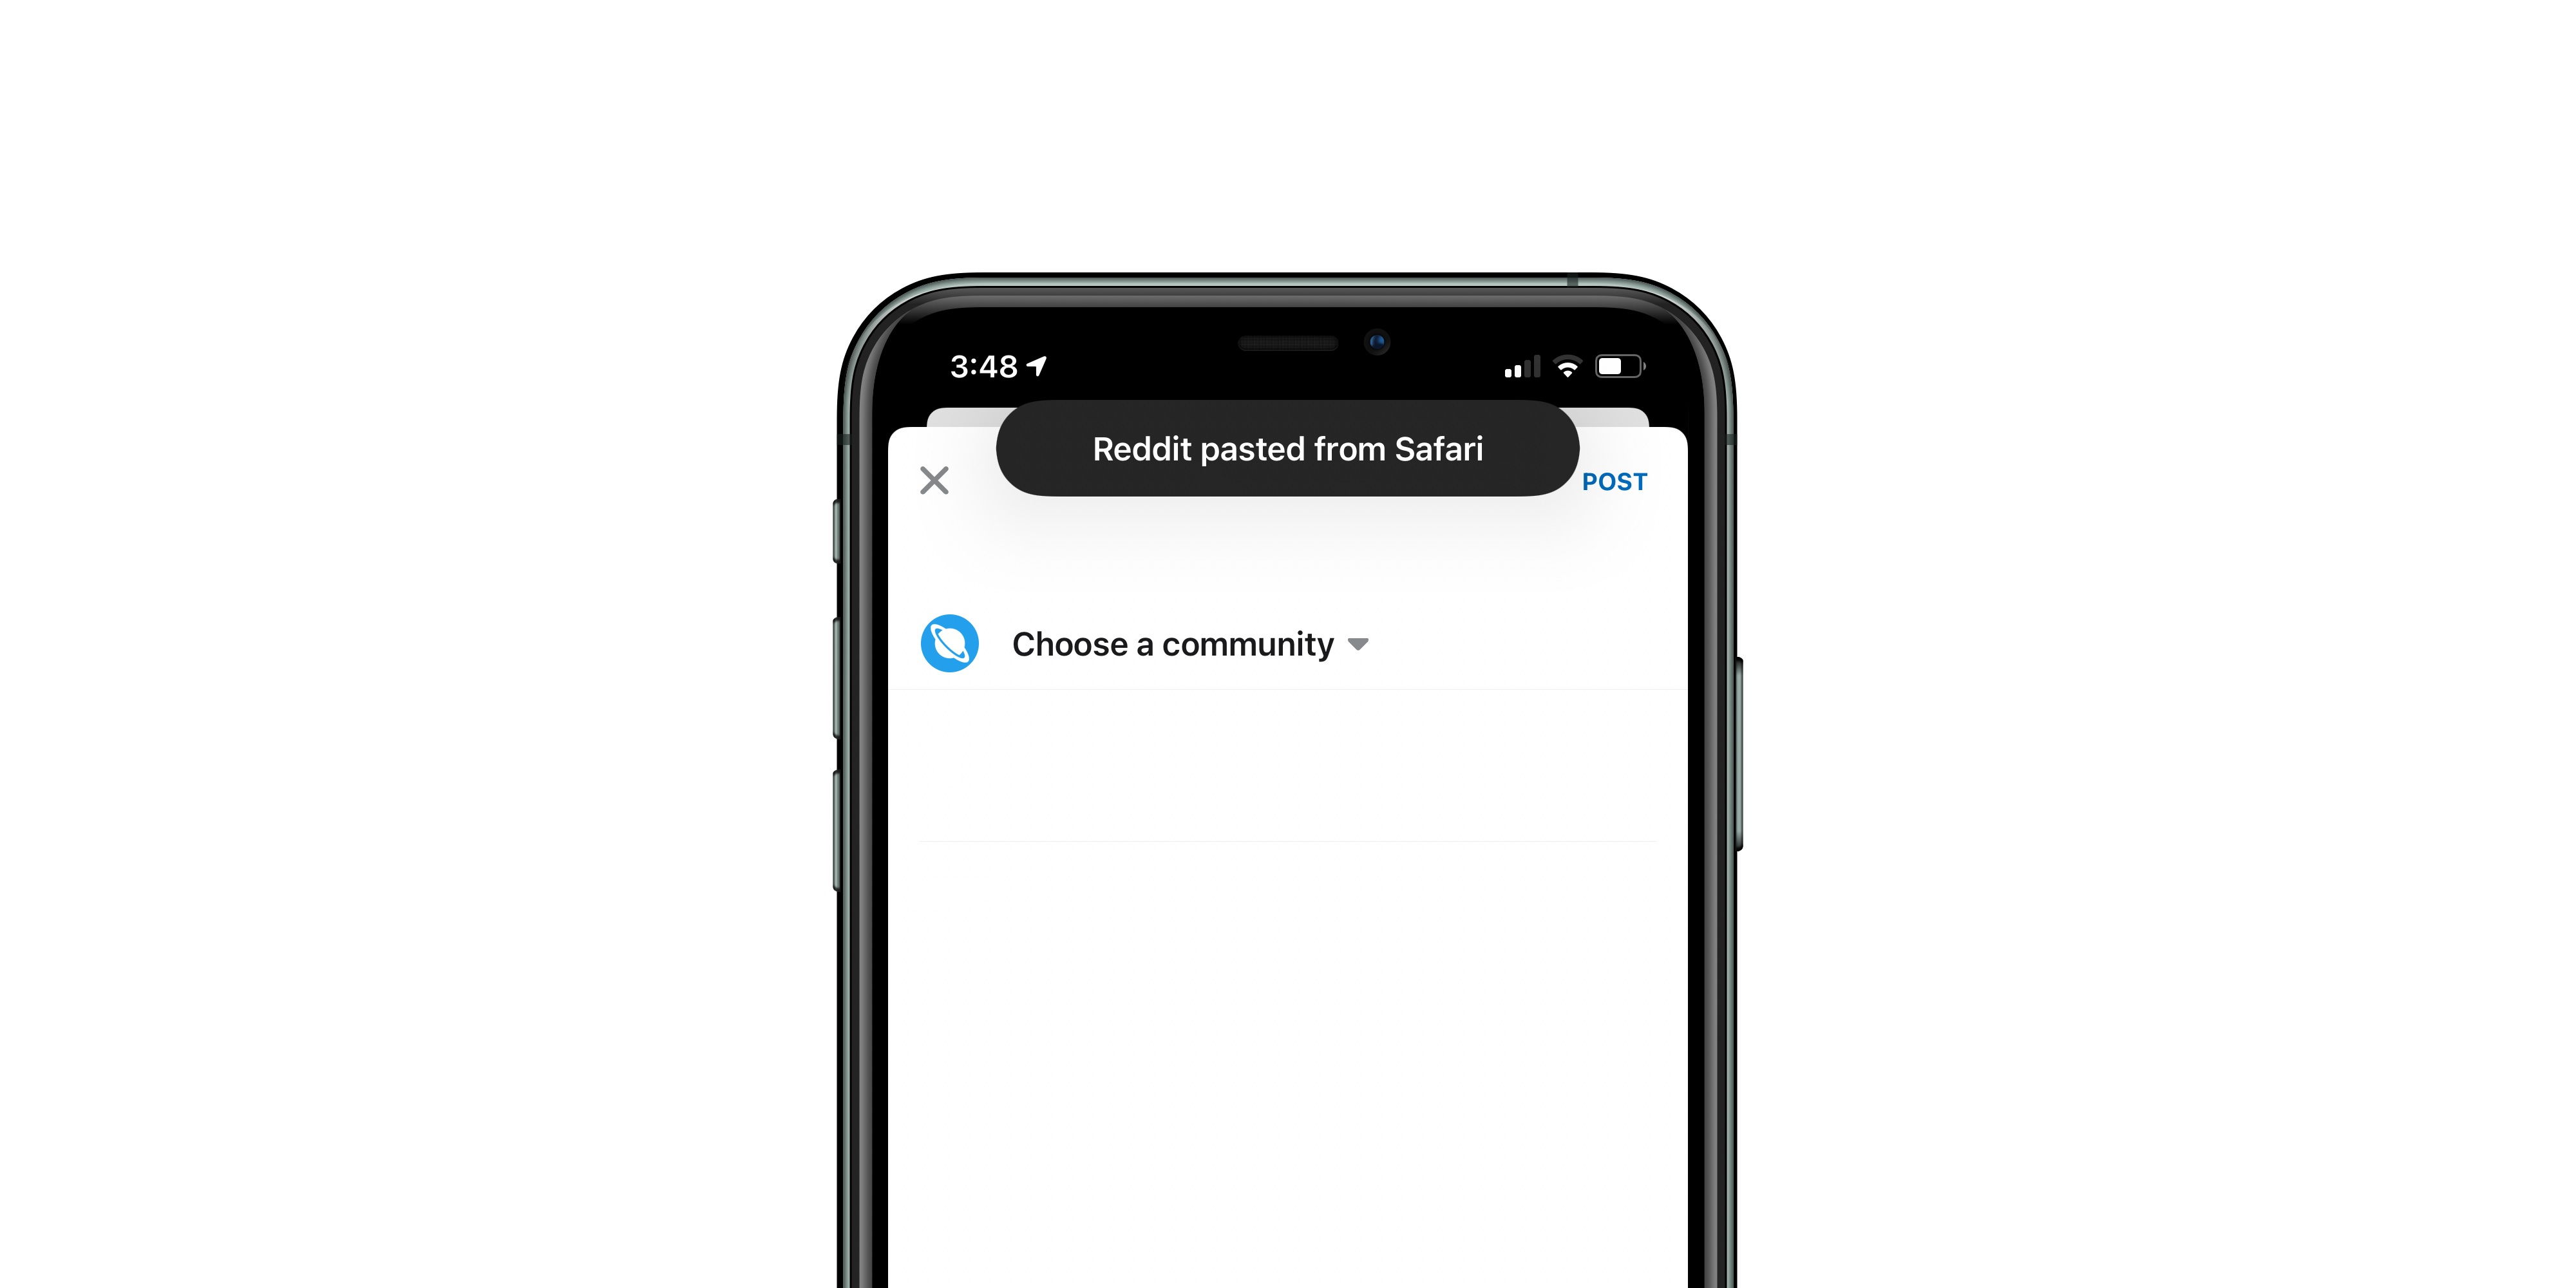 Reddit promises to stop accessing user clipboards after